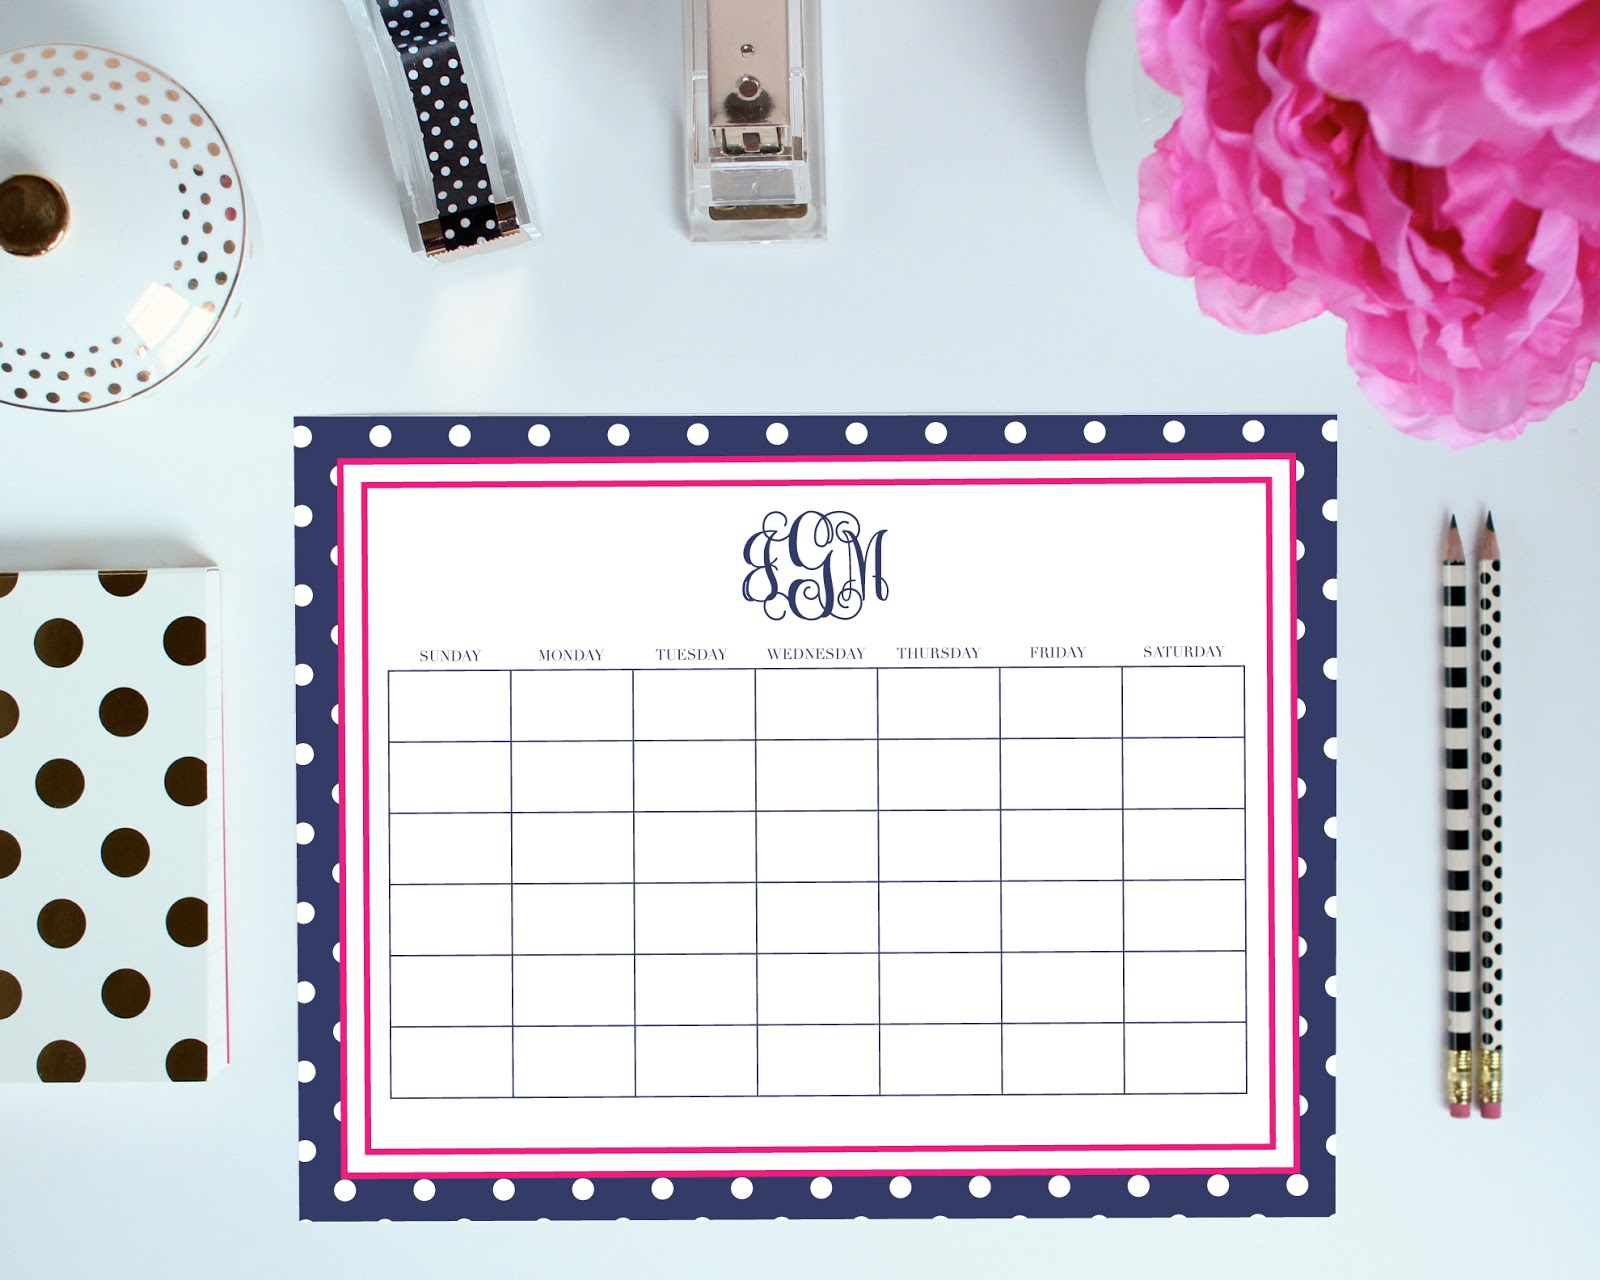 Monthly Layout - Printable Organization Pages can be customized with your monogram. You pick the colors, frame, font, and more!